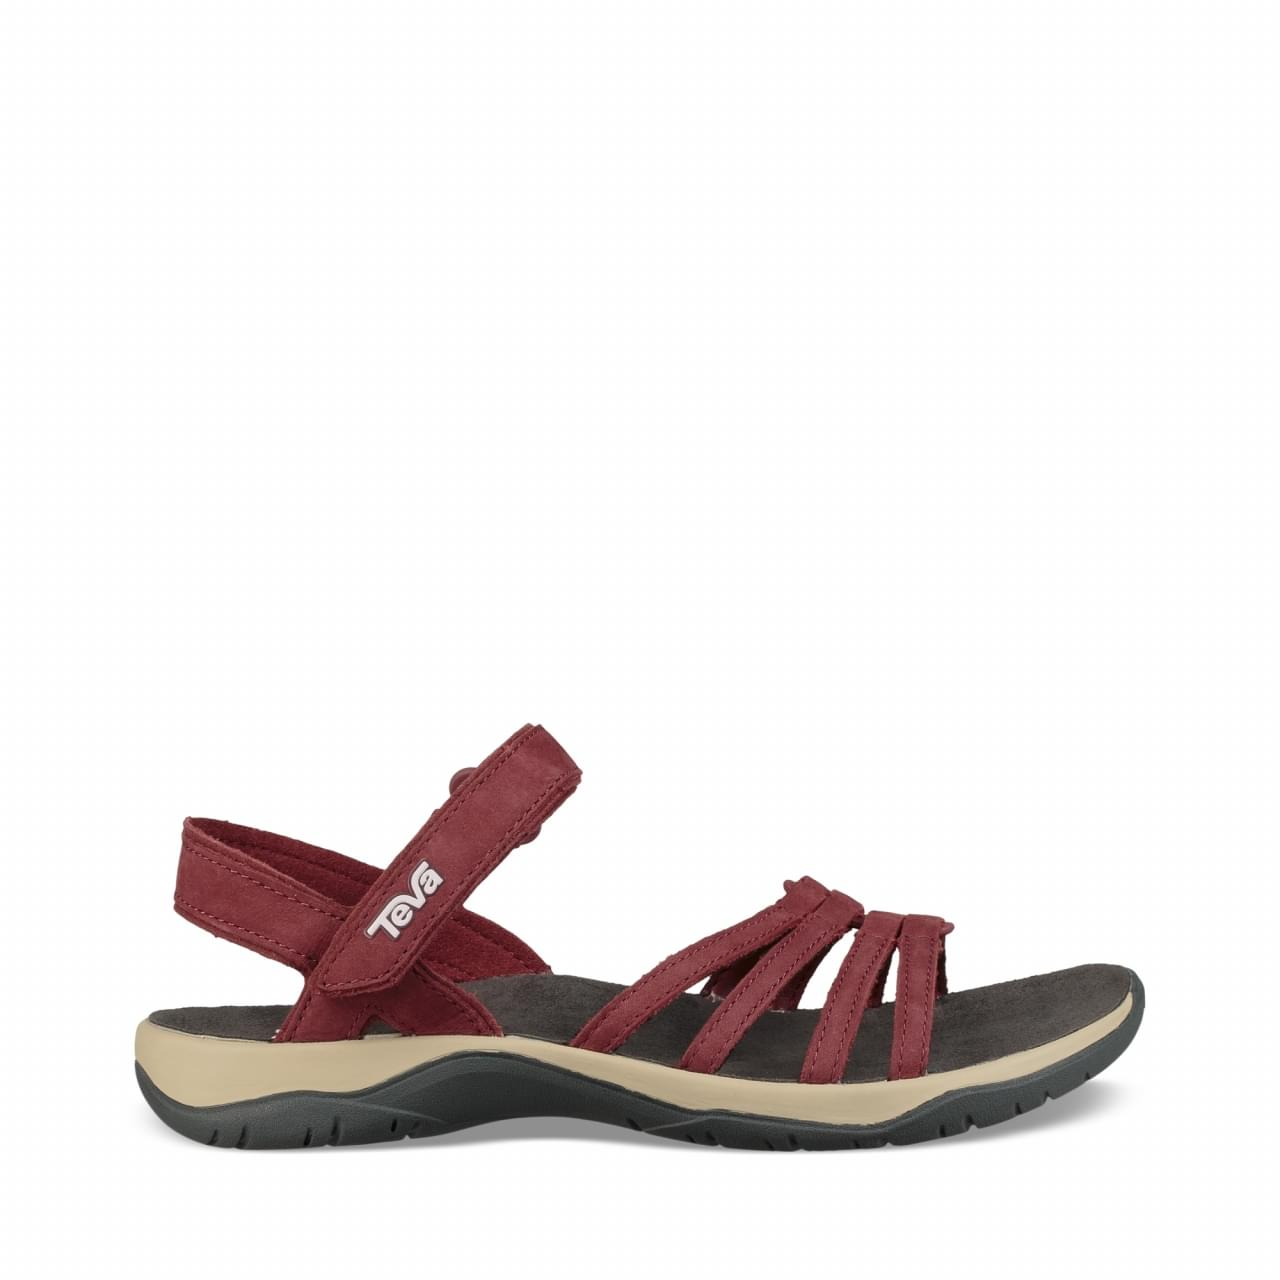 Teva Elzada Leather Sandaal Dames Rood